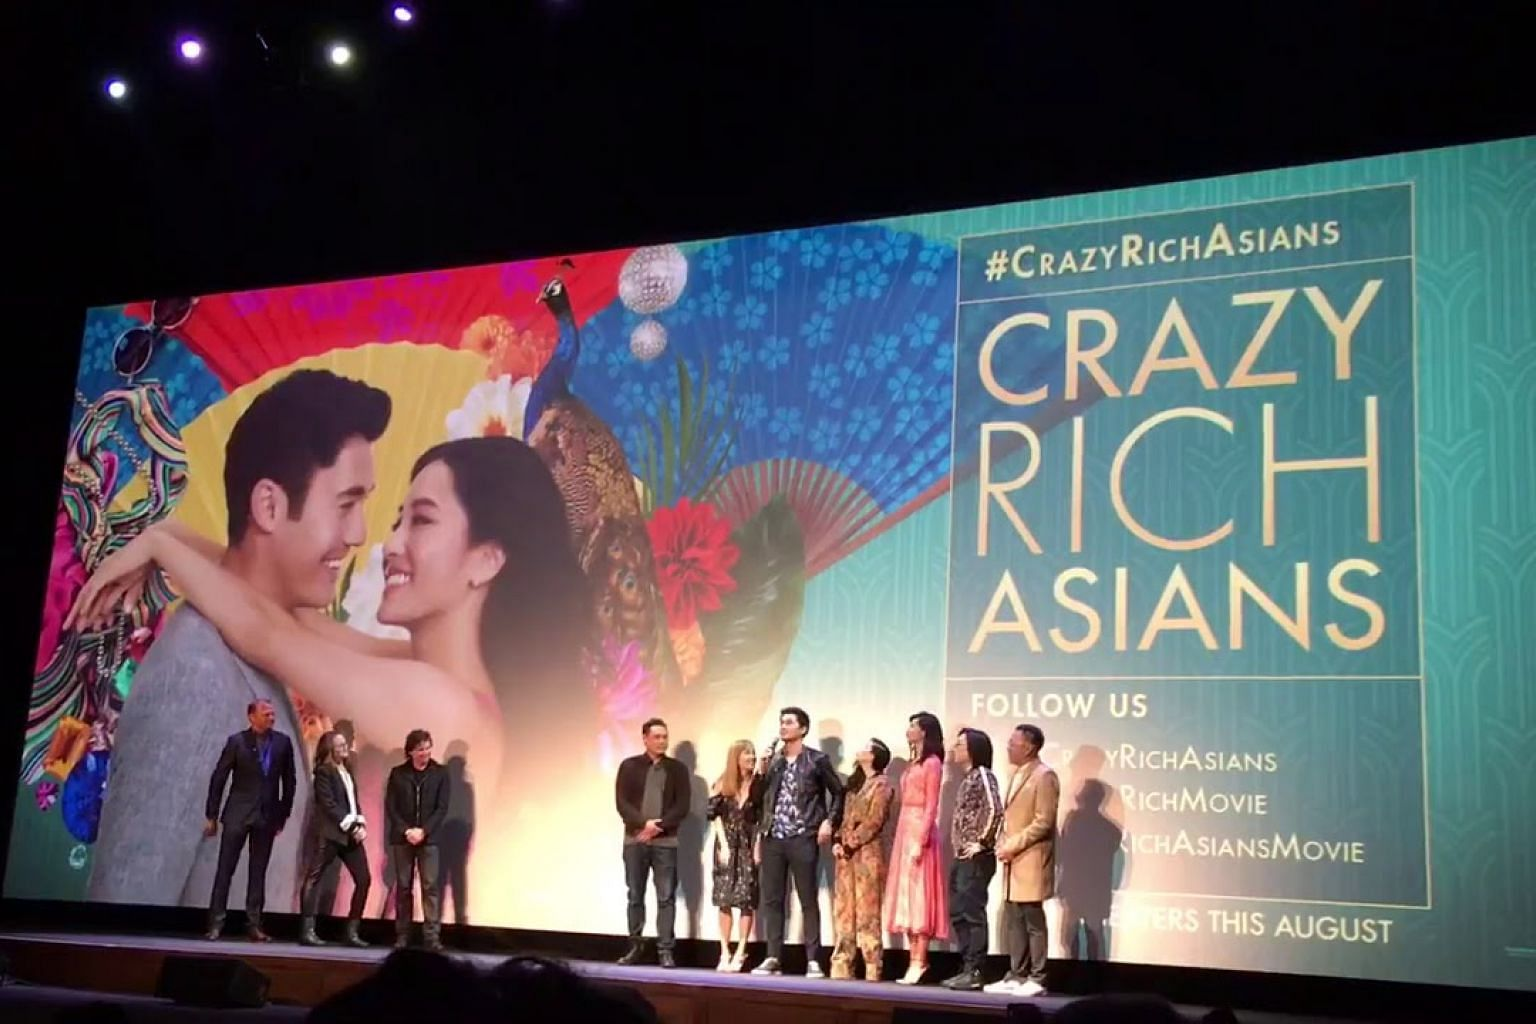 The first public screening of Crazy Rich Asians in Los Angeles